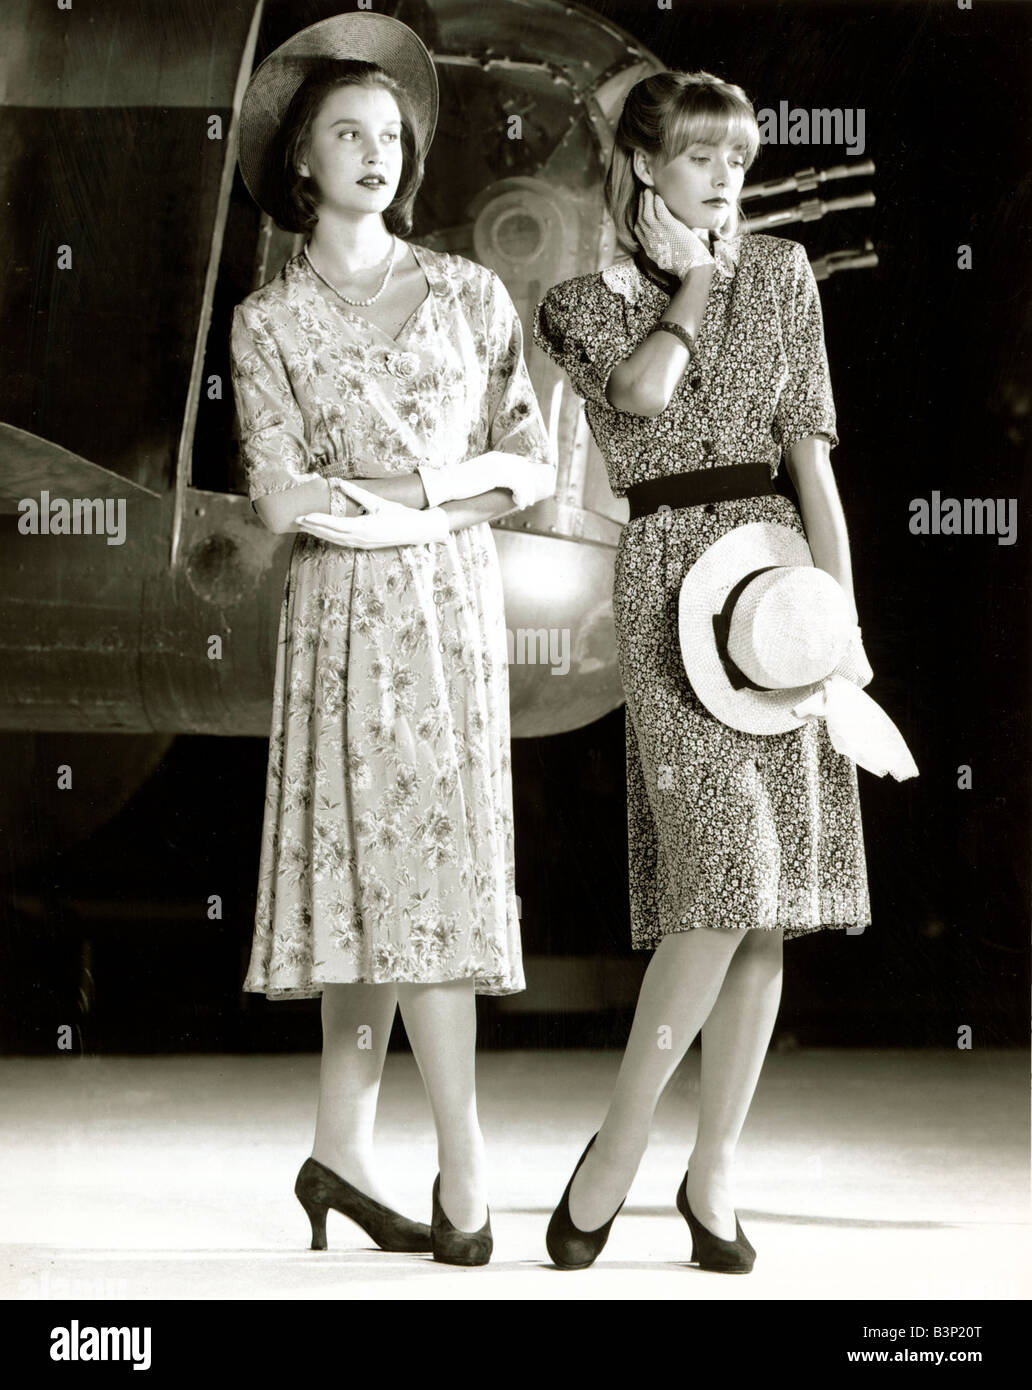 Fashion 1940s Two Female Models Flirty 40s Style Evening